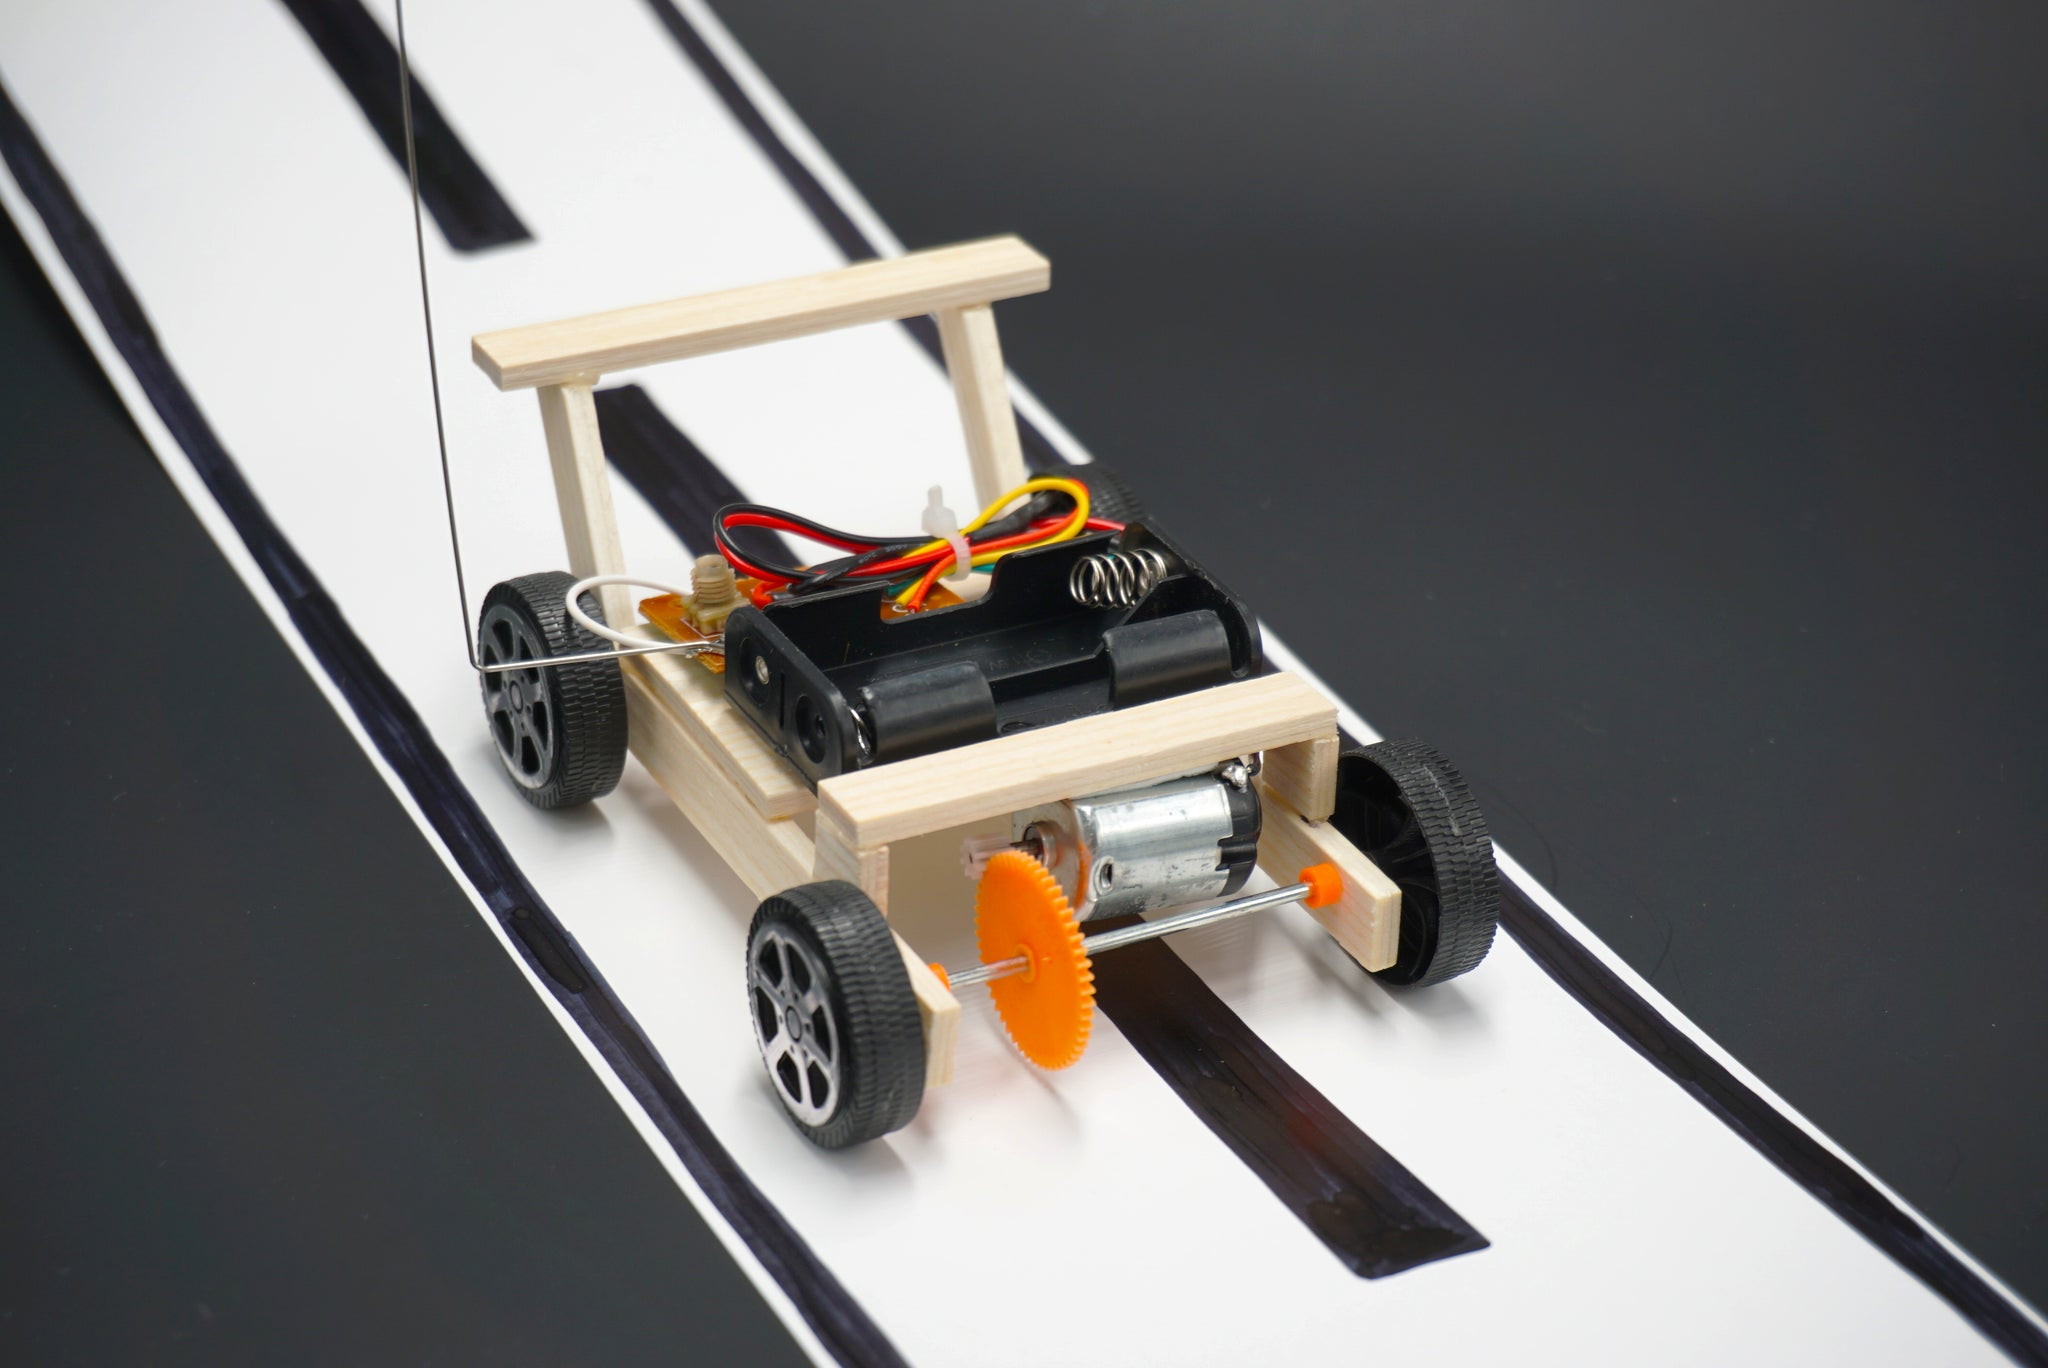 Remote Controlled Circuit Board Car Do It Yourself How To Make Electronic Boards Diy Stem Stream Steam Kit